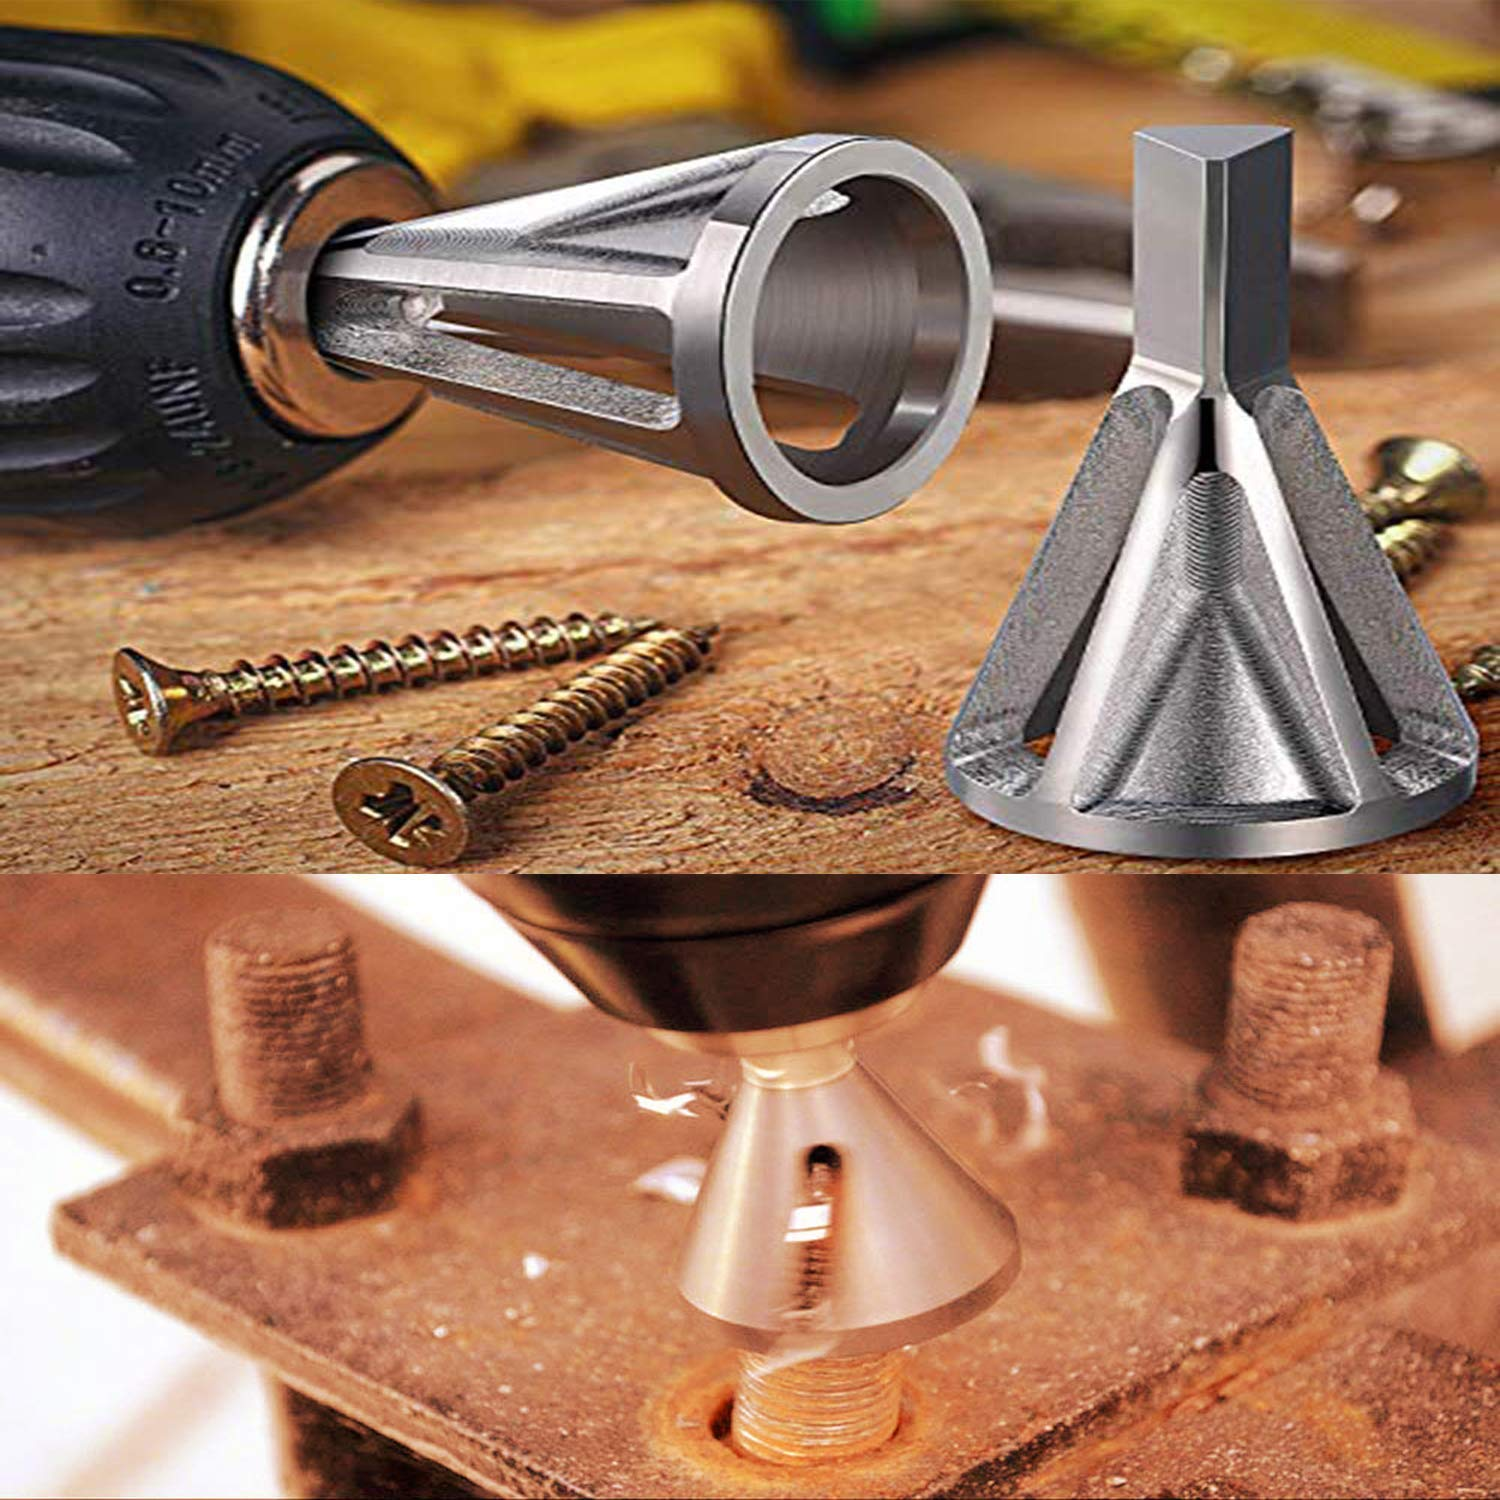 Drill Accessories Deburring Tool for External Bevel Screws Deburring External Bevel Tool for Metal Outside Diameter Silver 2 Piece Burr Remove Tool